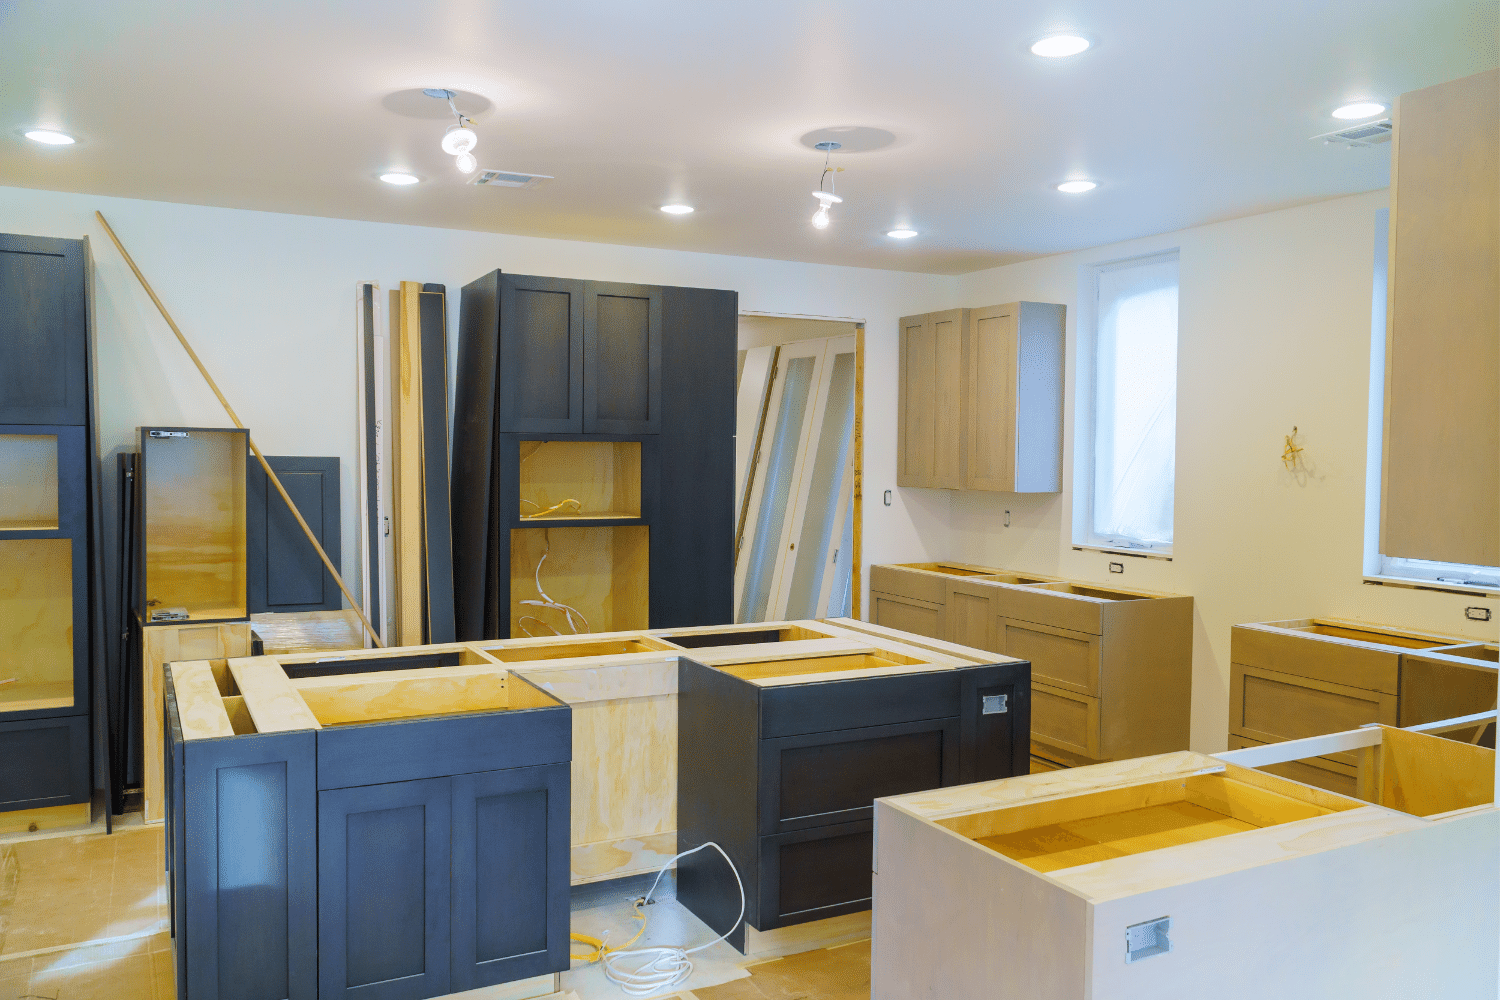 How to diy kitchen remodel